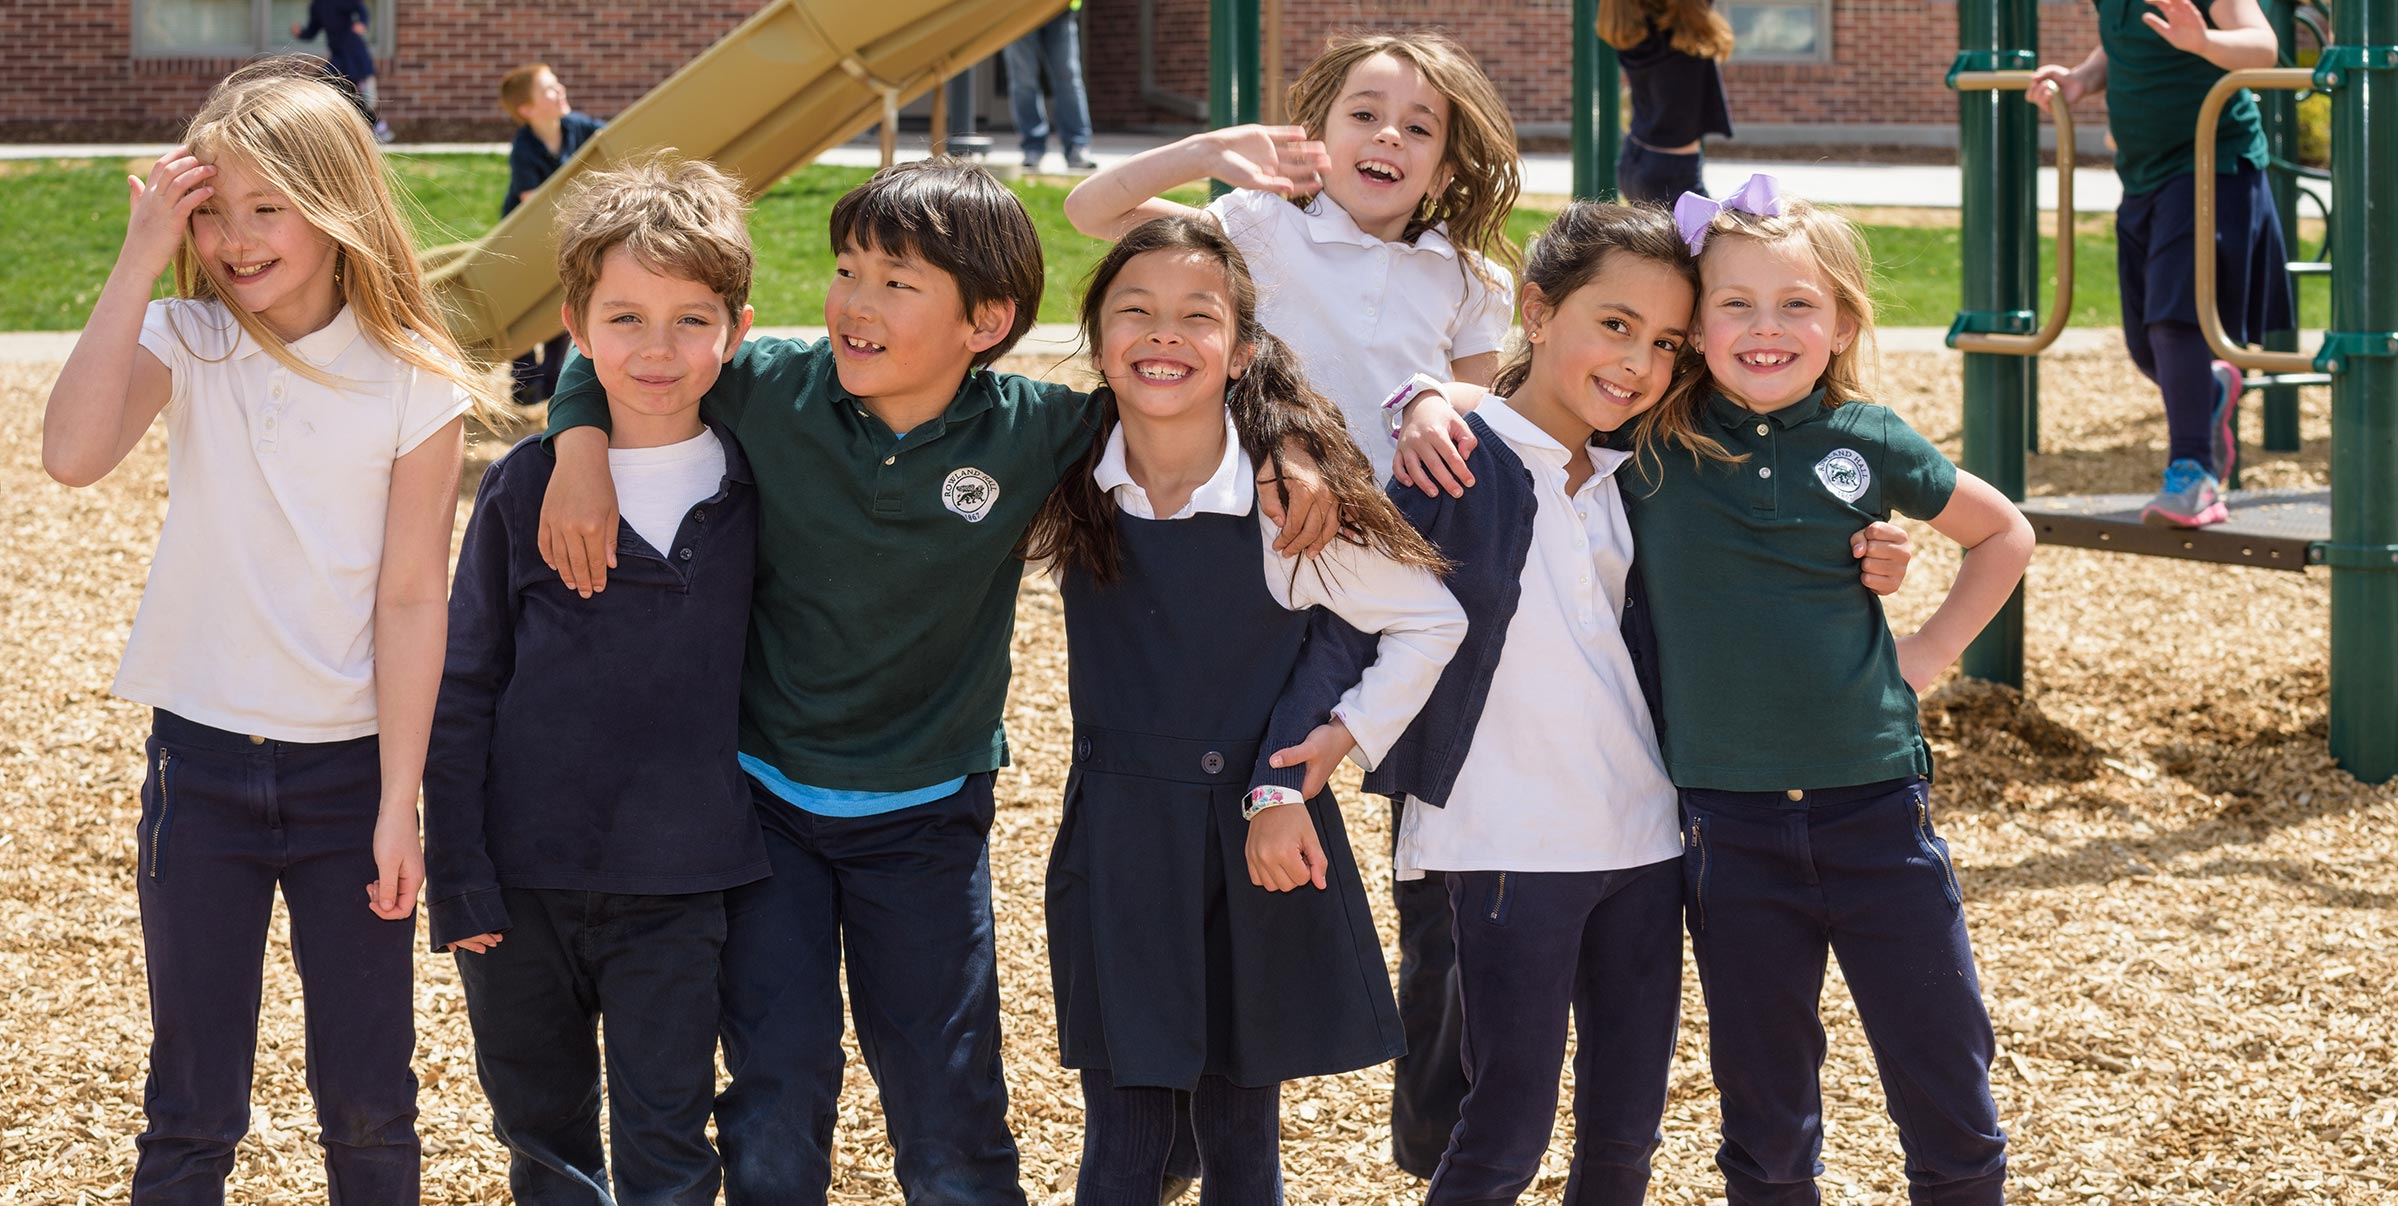 Lower Schools laugh and embrace on playground.